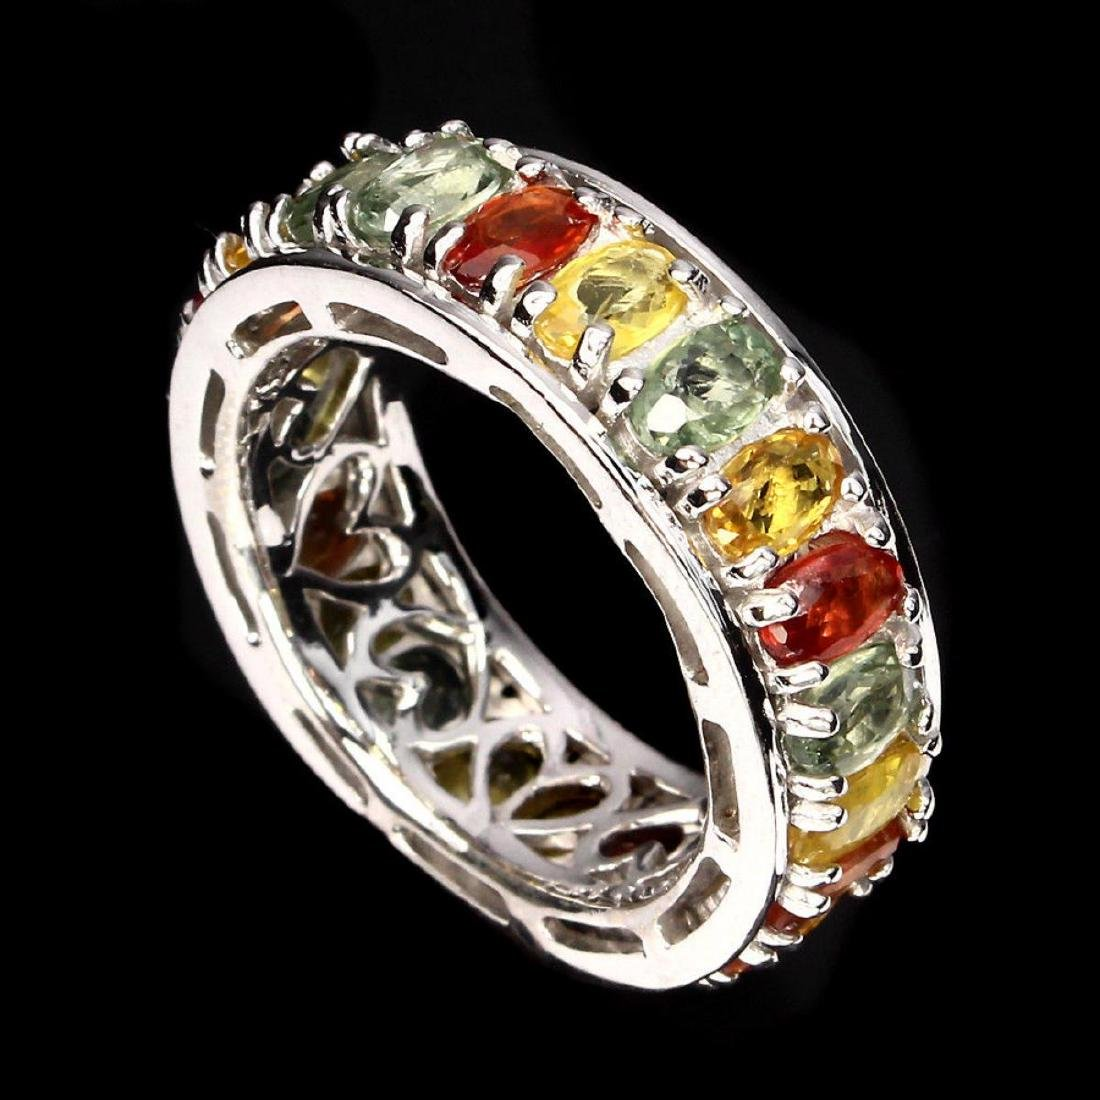 Natural Fancy Color Sapphire Ring - 2